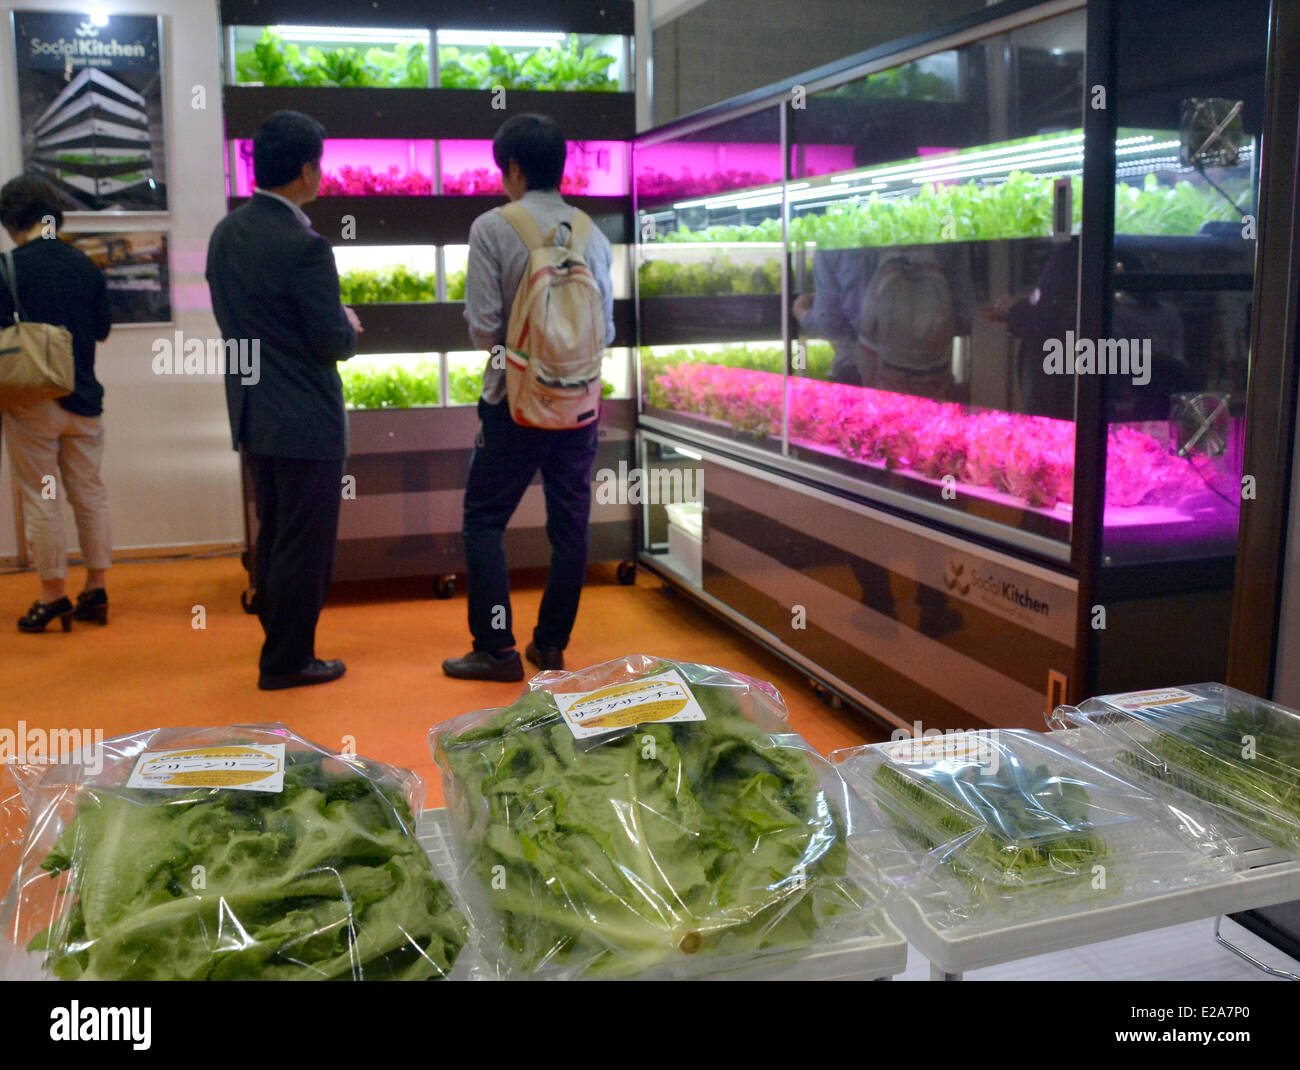 How to Grow Vegetables With Grow Lights